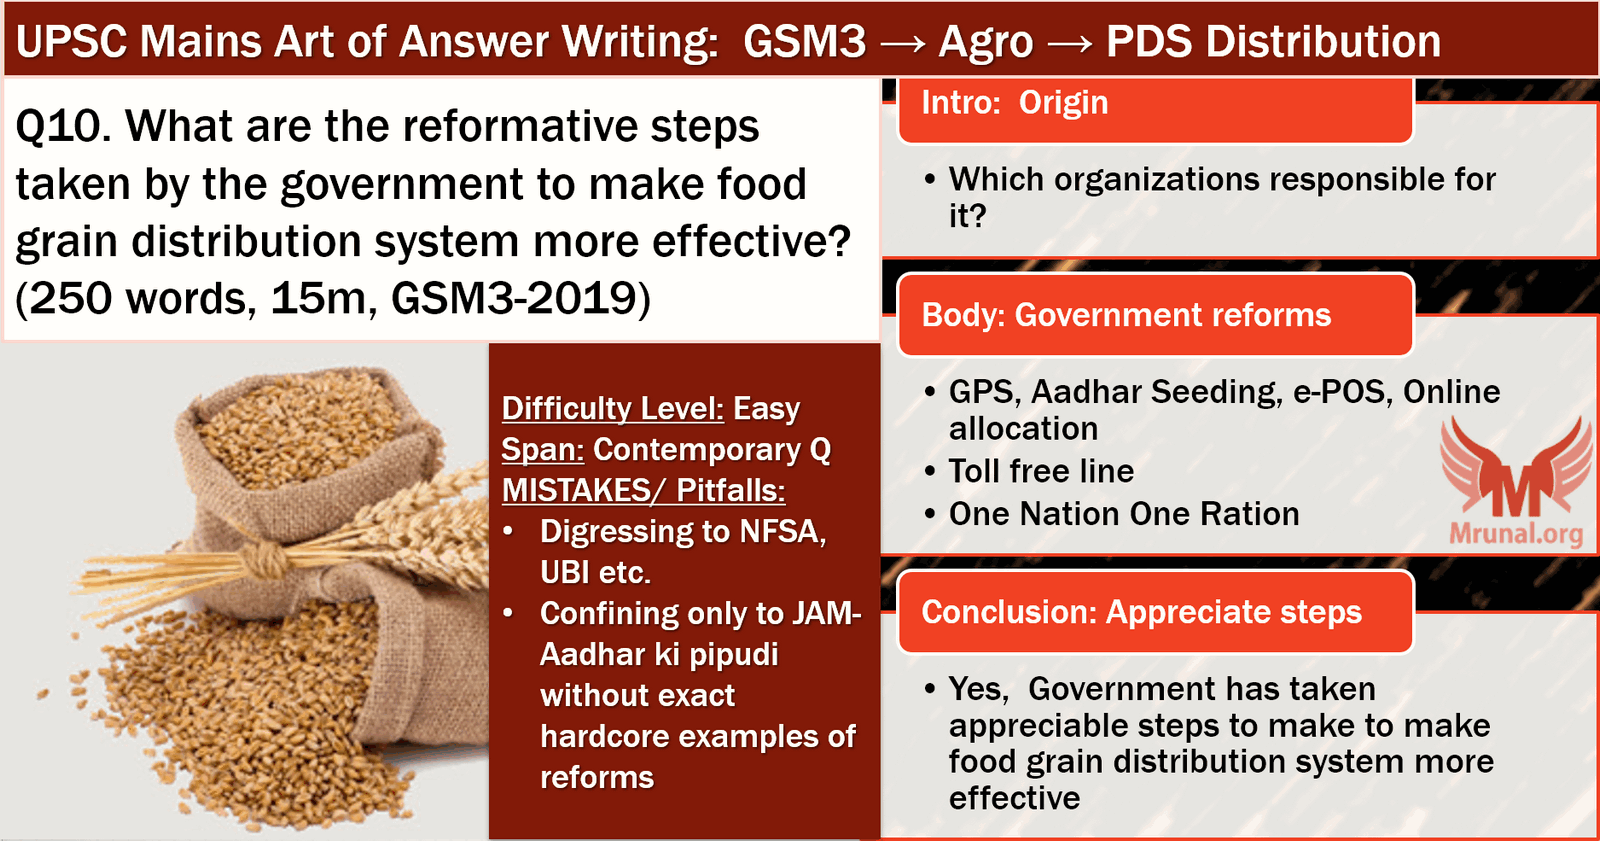 UPSC Mains Model Answer Writing Framework for food grain distribution